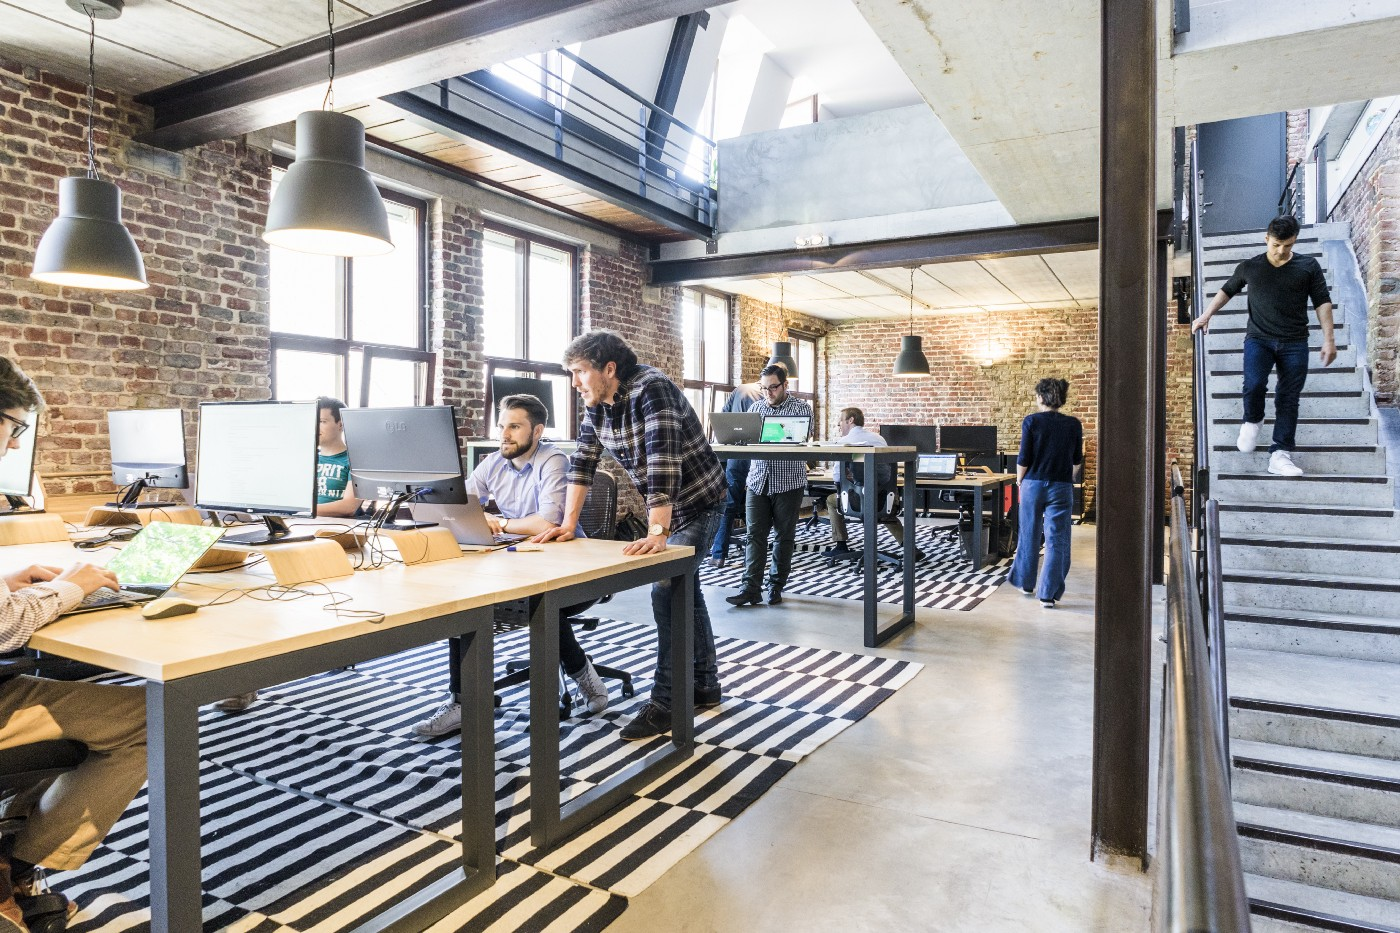 People working at an open office